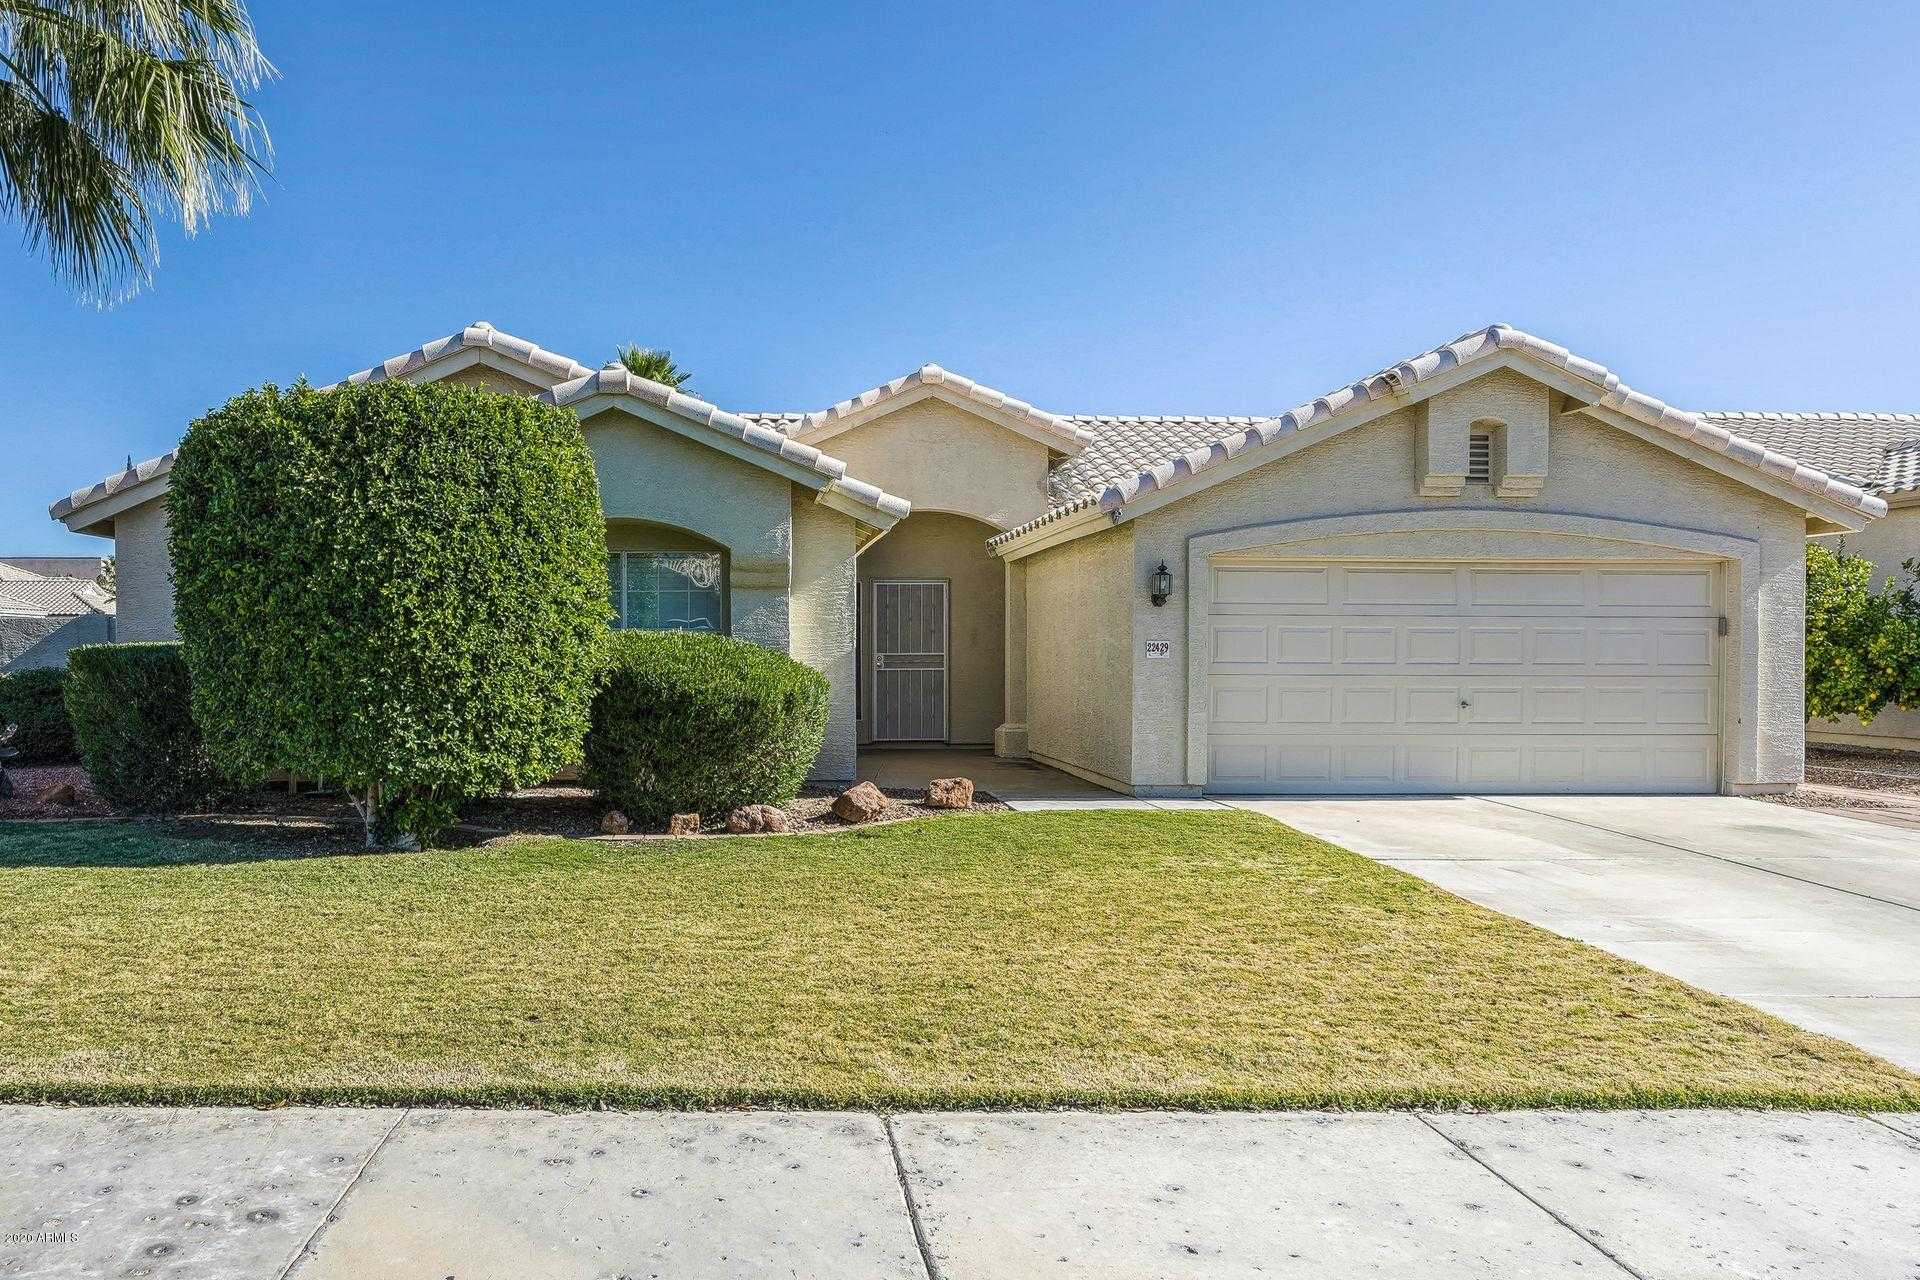 $369,950 - 4Br/2Ba - Home for Sale in Hillcrest Ranch, Glendale